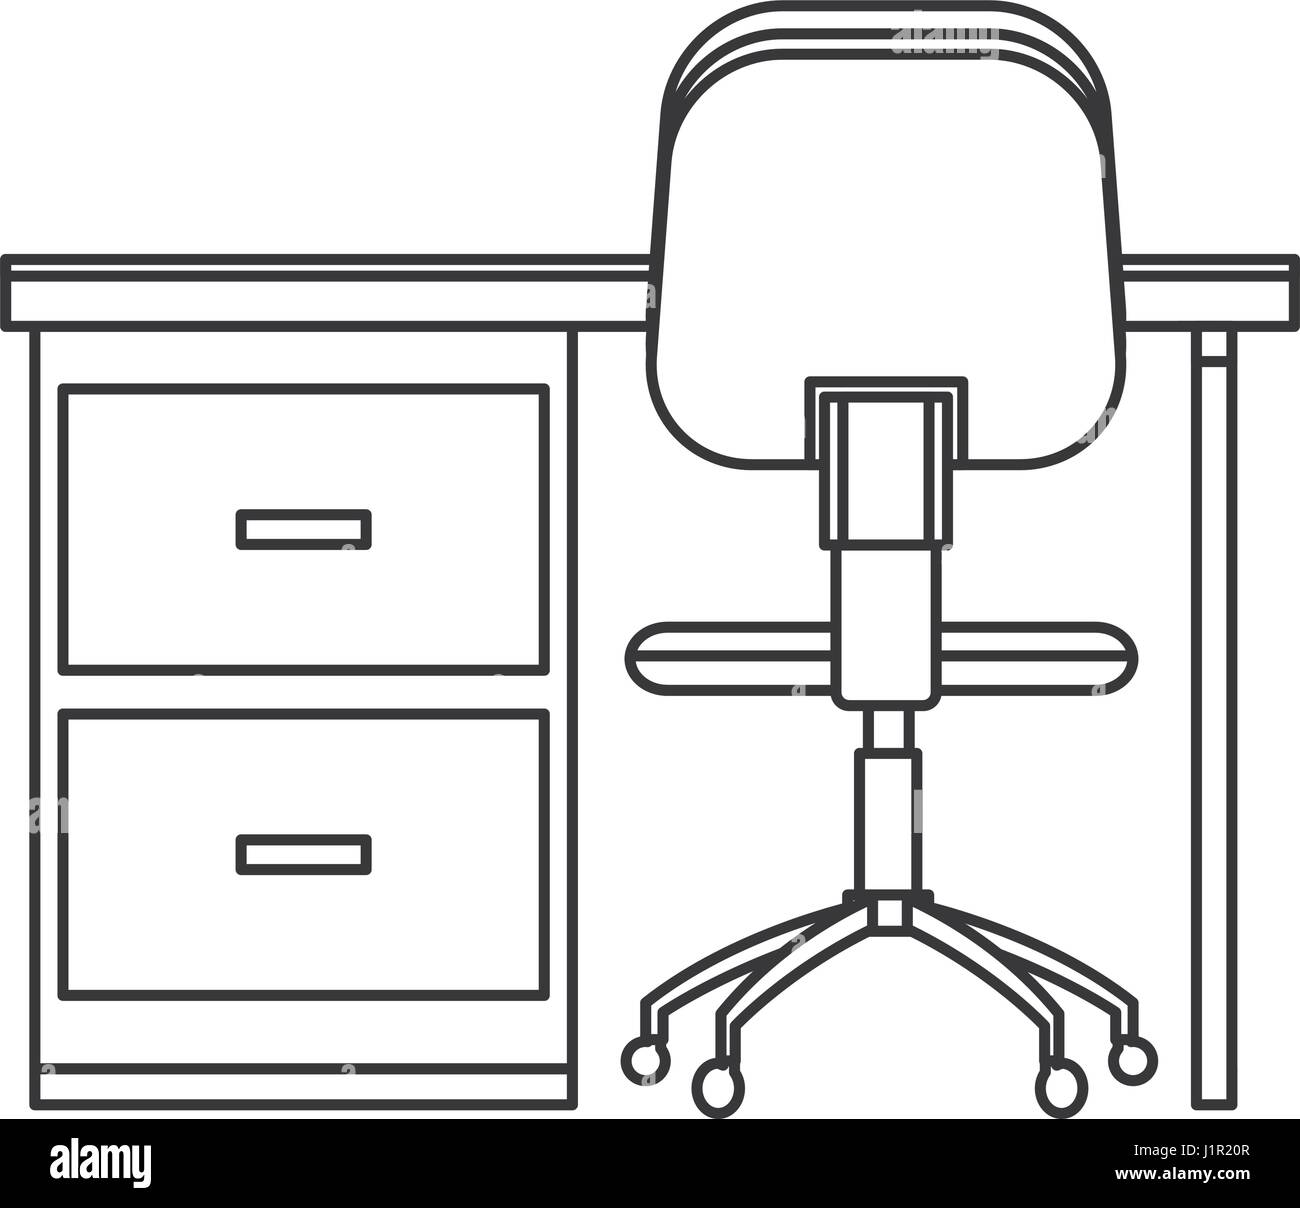 Super Desk Chair Workplace Image Outline Stock Vector Art Onthecornerstone Fun Painted Chair Ideas Images Onthecornerstoneorg